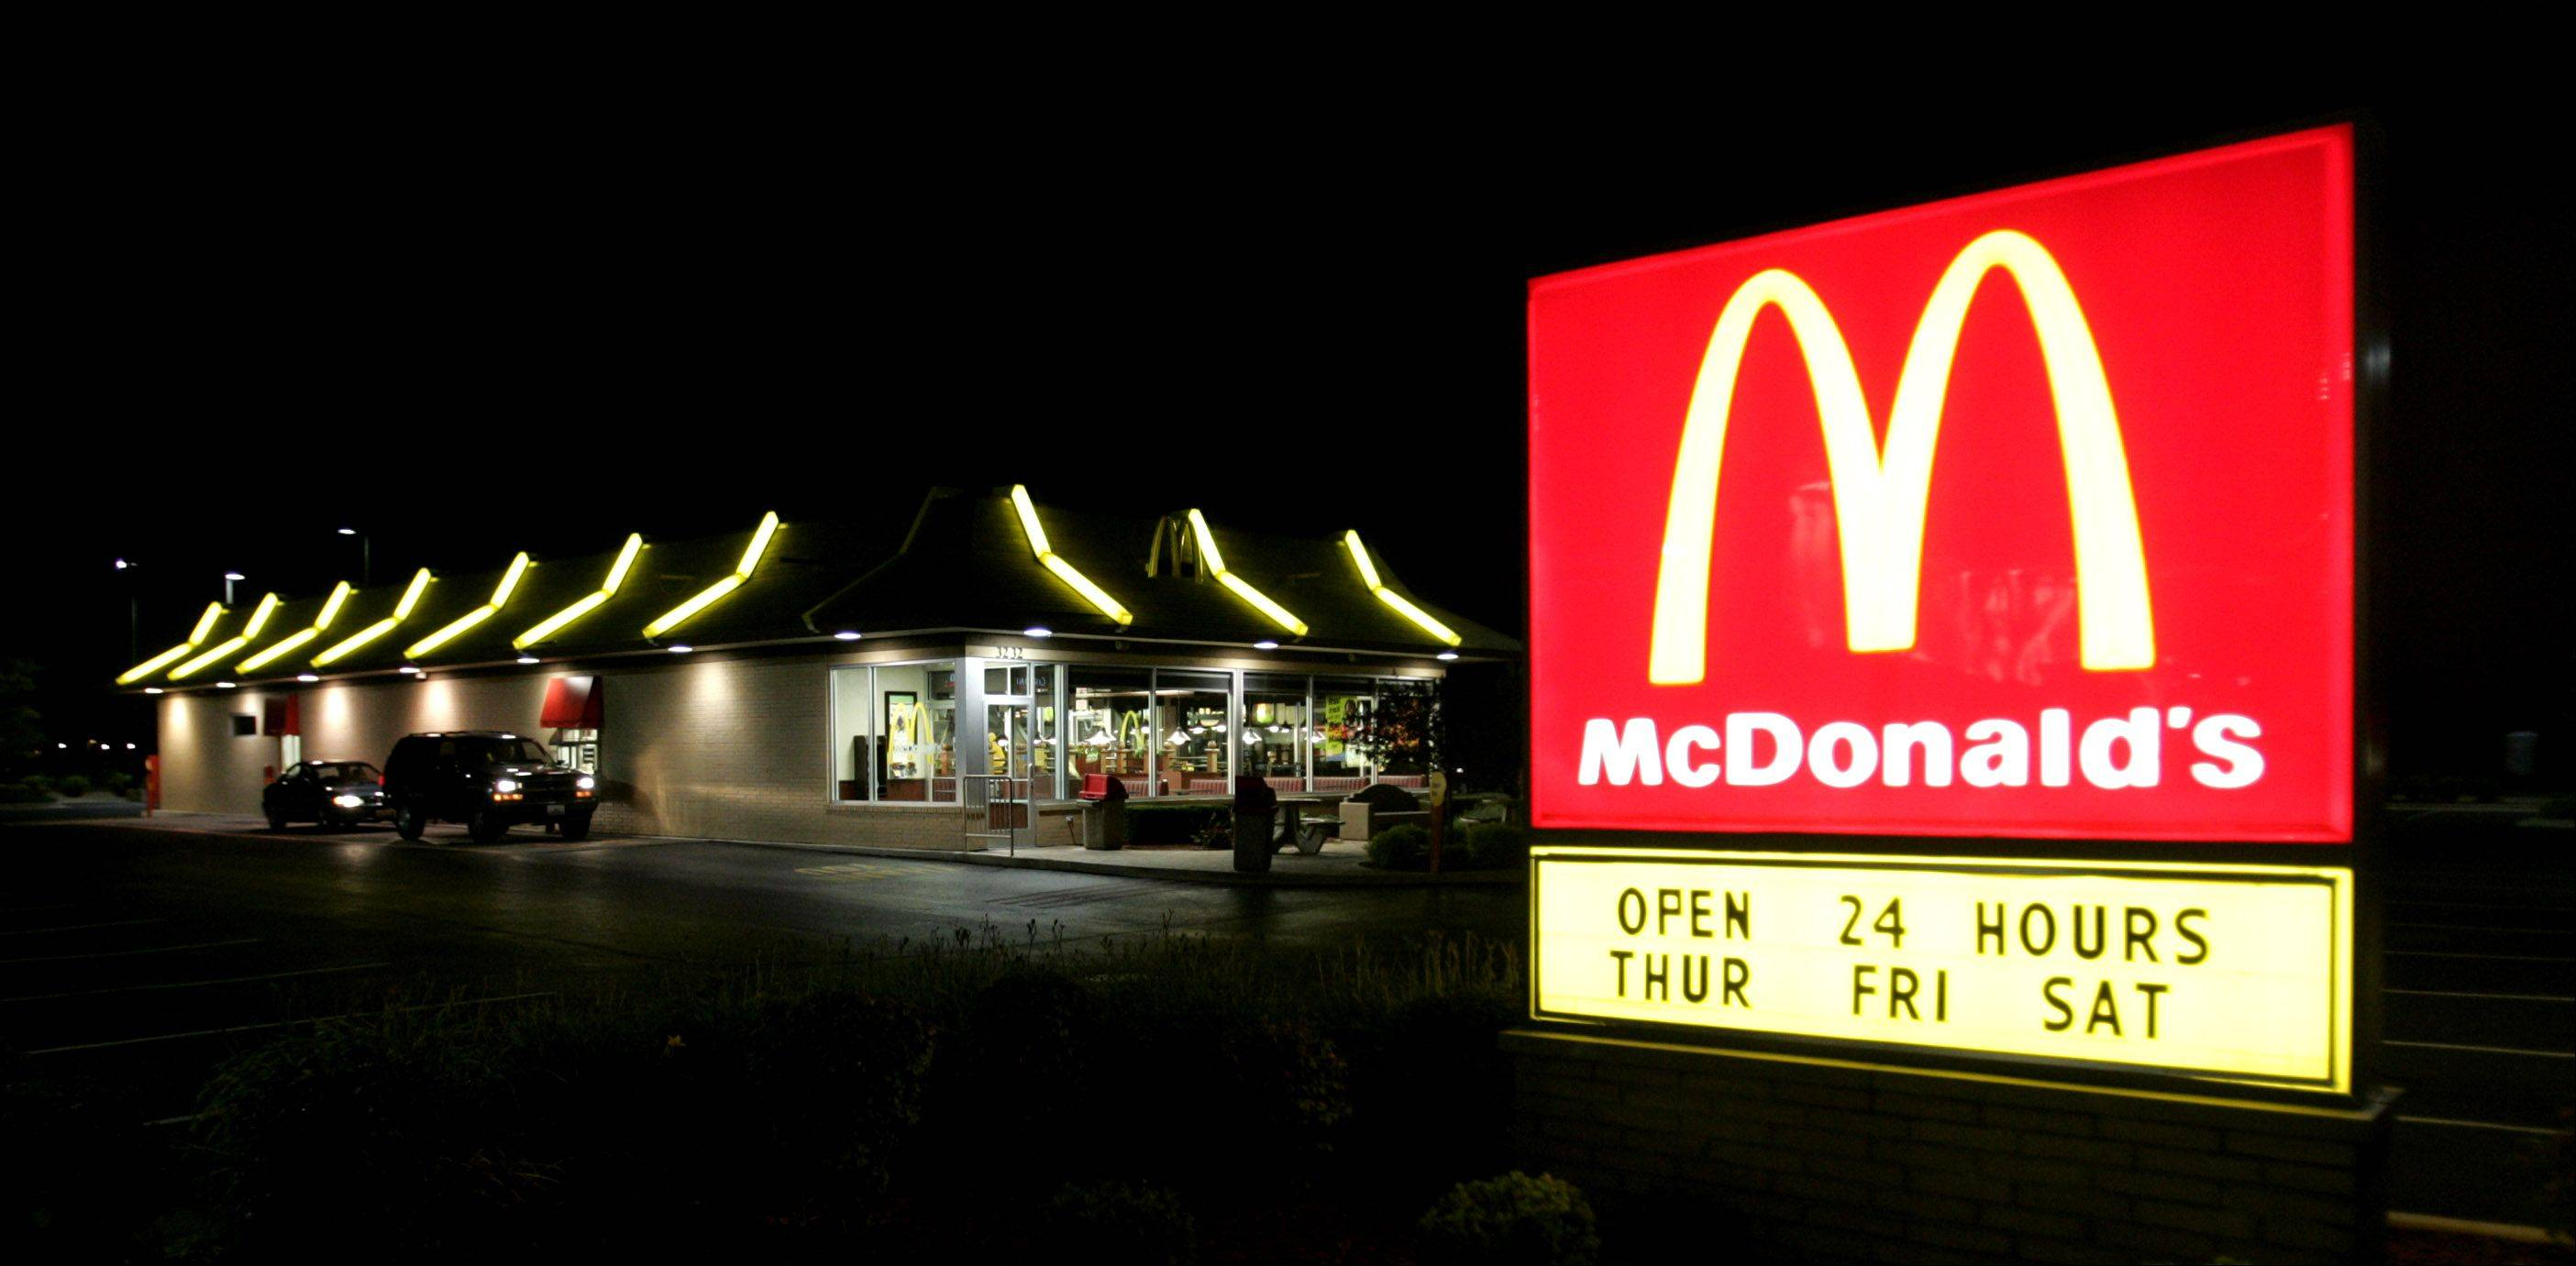 McDonald�s and one of its franchise owners agreed to pay $700,000 to members of the Muslim community to settle allegations a Detroit-area restaurant falsely advertised its food as being prepared according to Islamic dietary law.